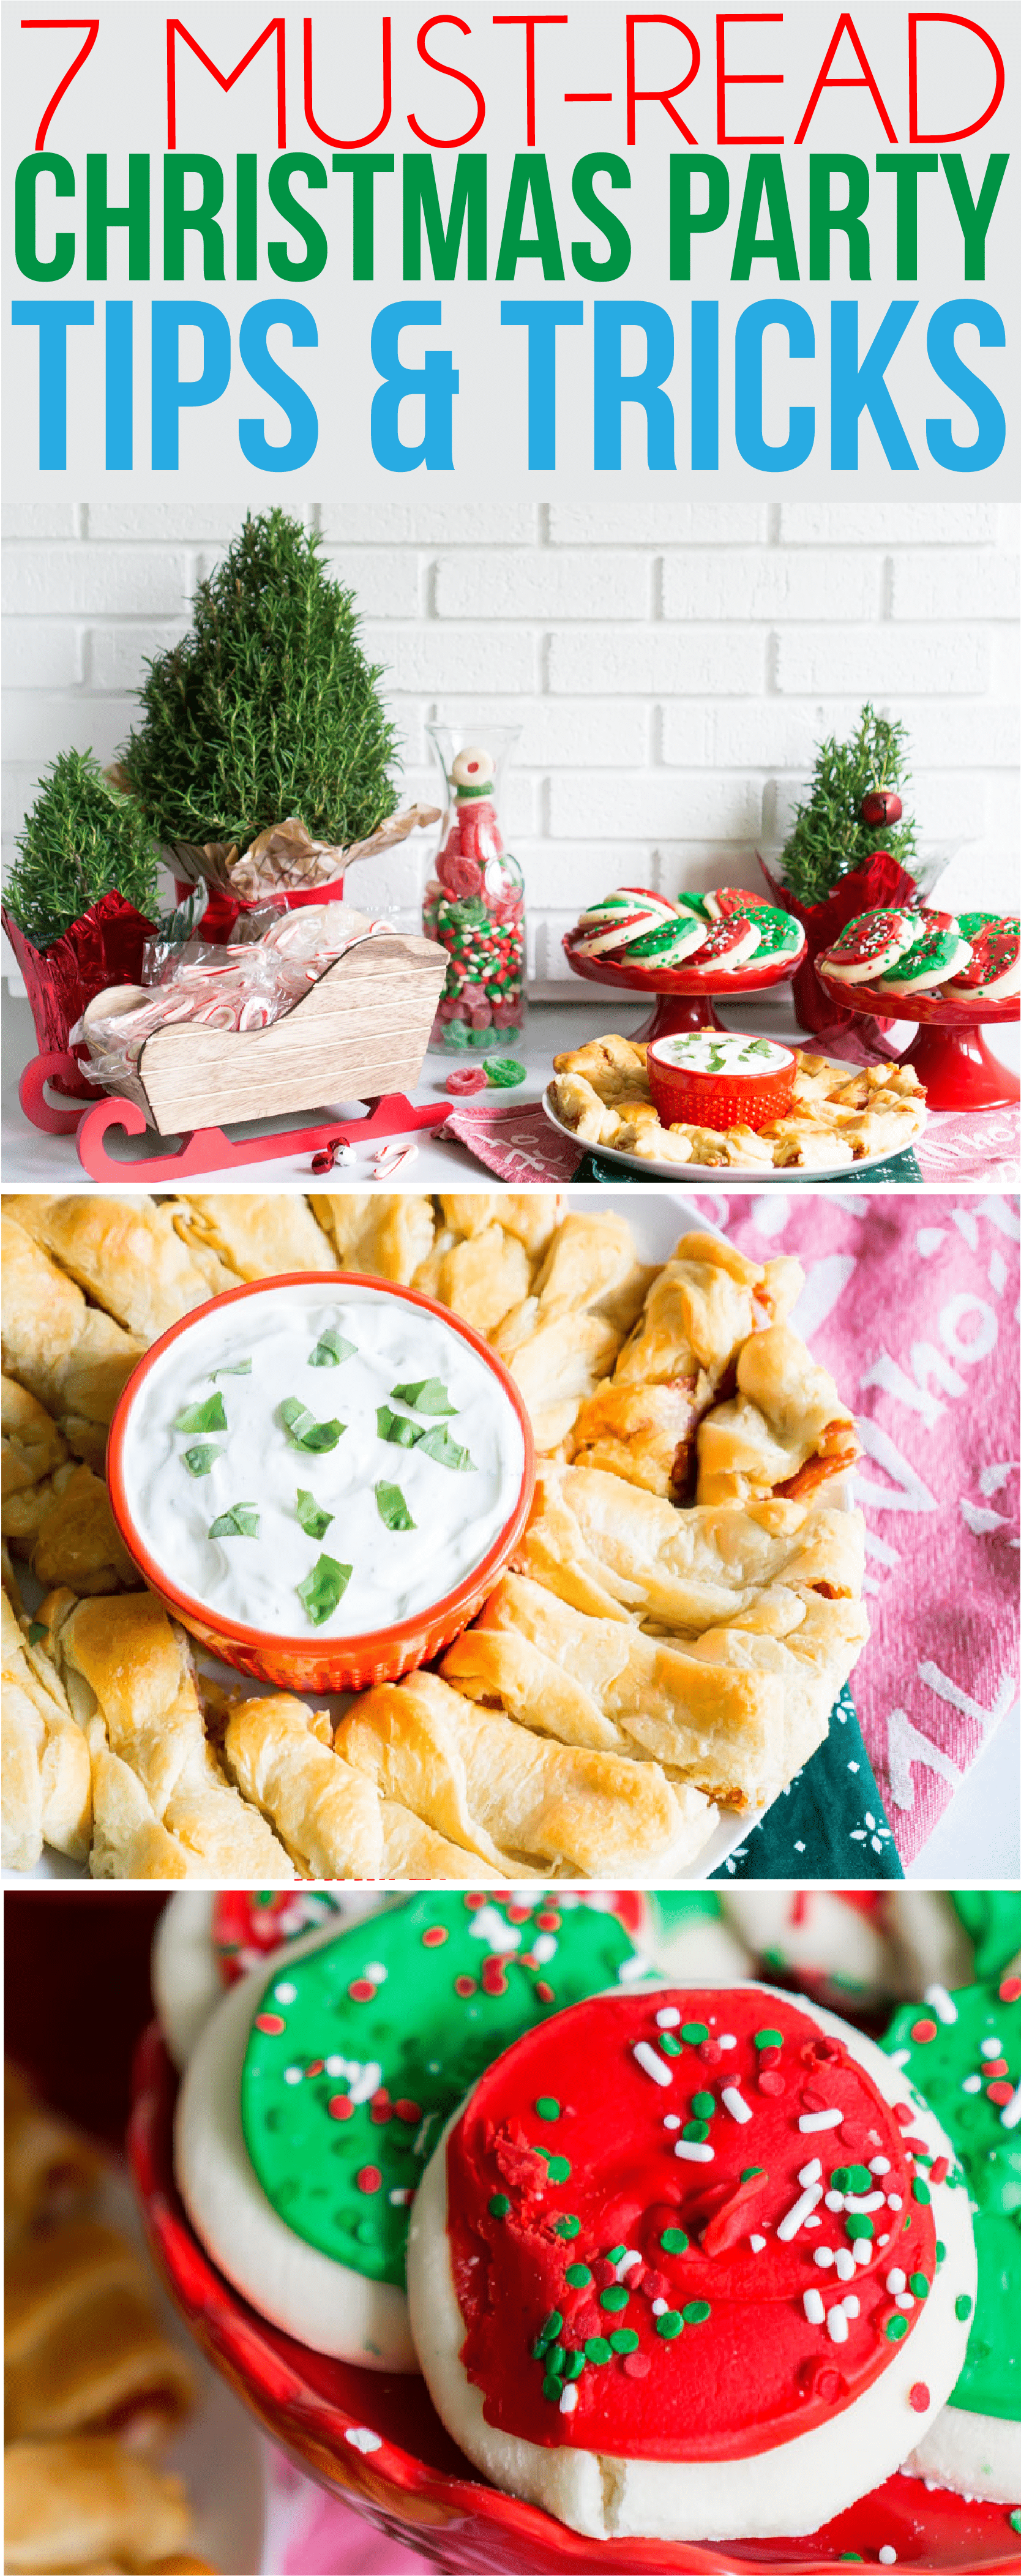 Wonderful Christmas Party Hosting Ideas Part - 9: Great Christmas Party Ideas And Tips For Hosting